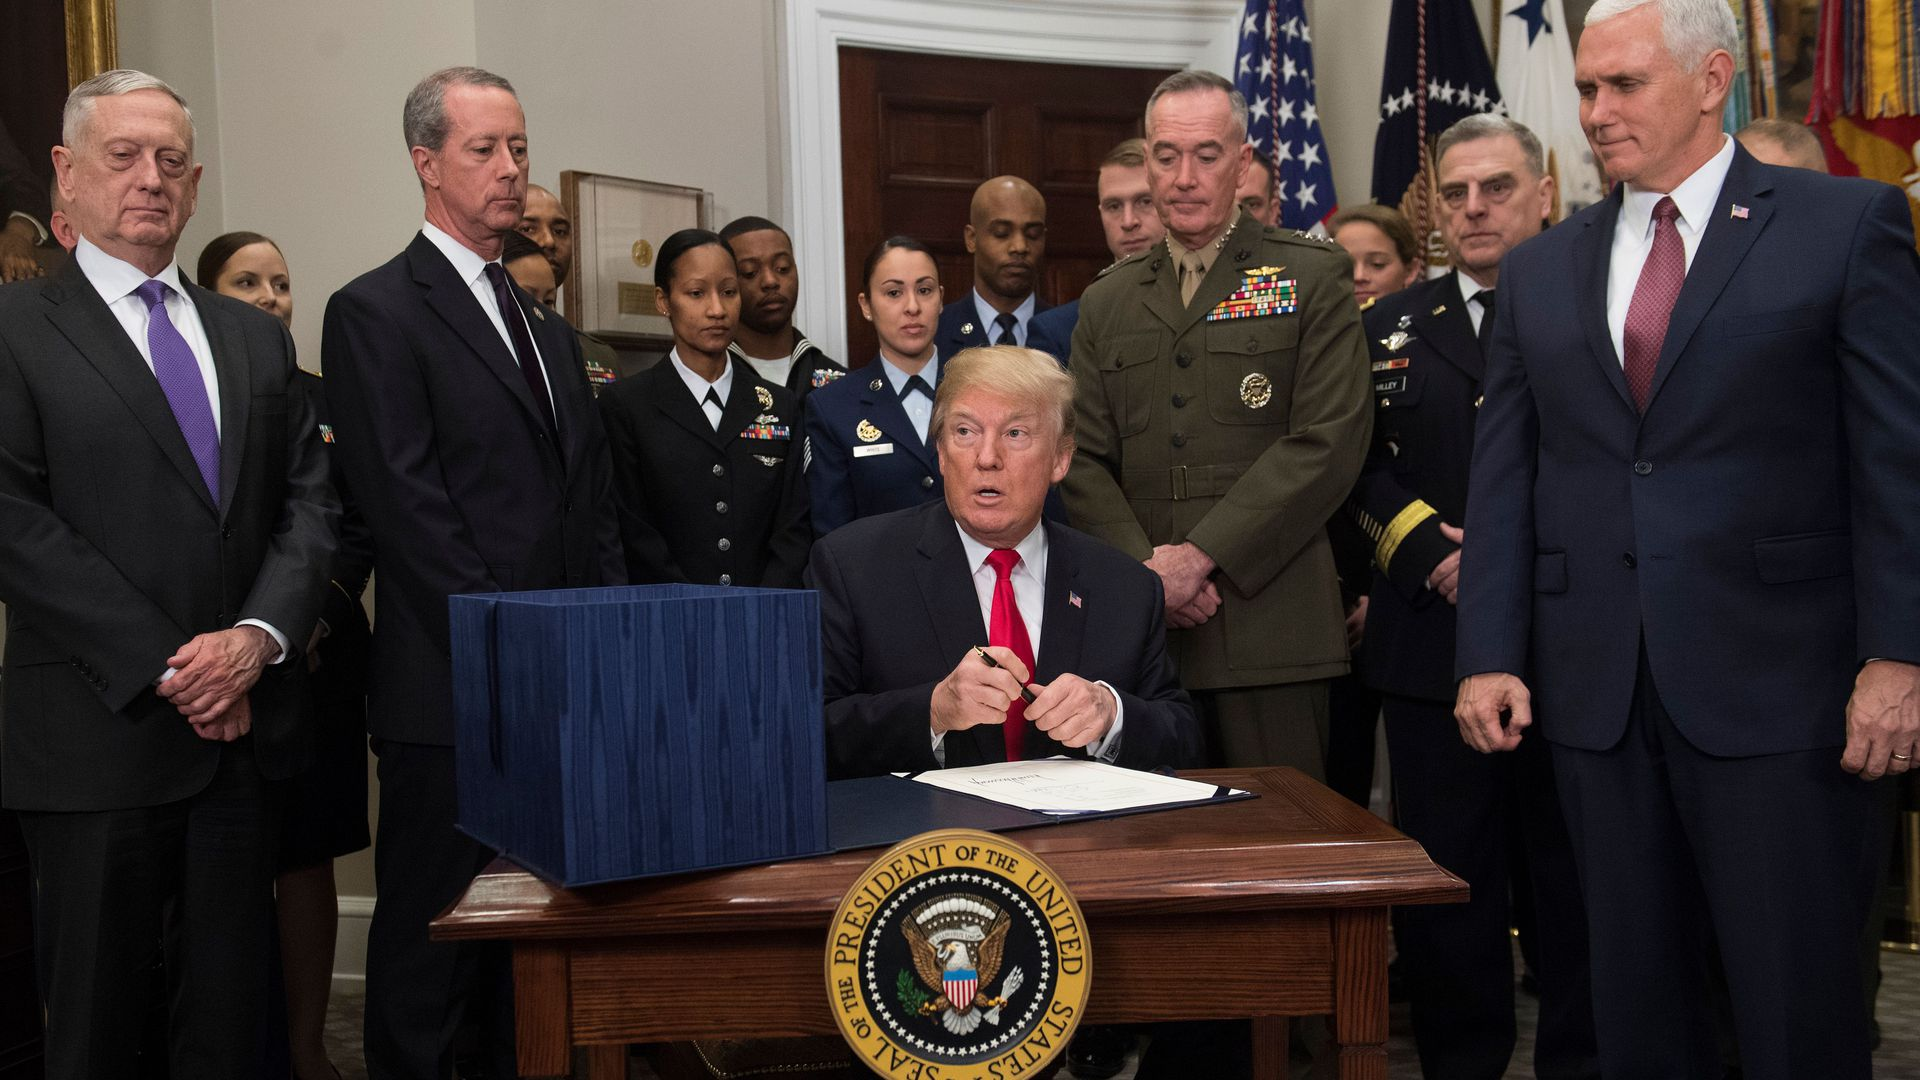 President Donald Trump, surrounded by military officials and members of Congress.